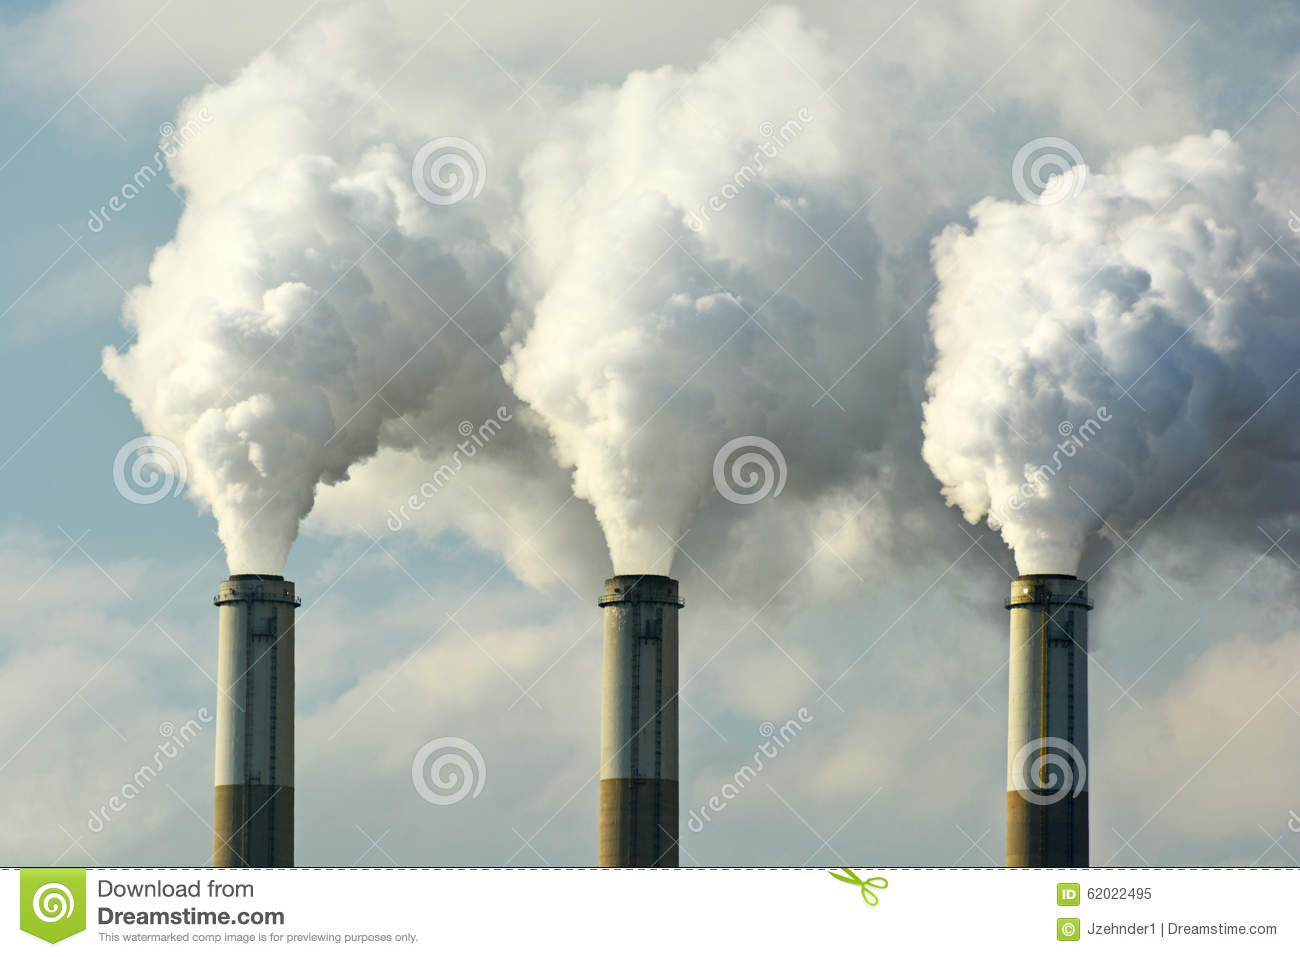 Download Multiple Coal Fossil Fuel Power Plant Smokestacks Emit Carbon Dioxide Pollution Stock Image - Image of cooling, coal: 62022495